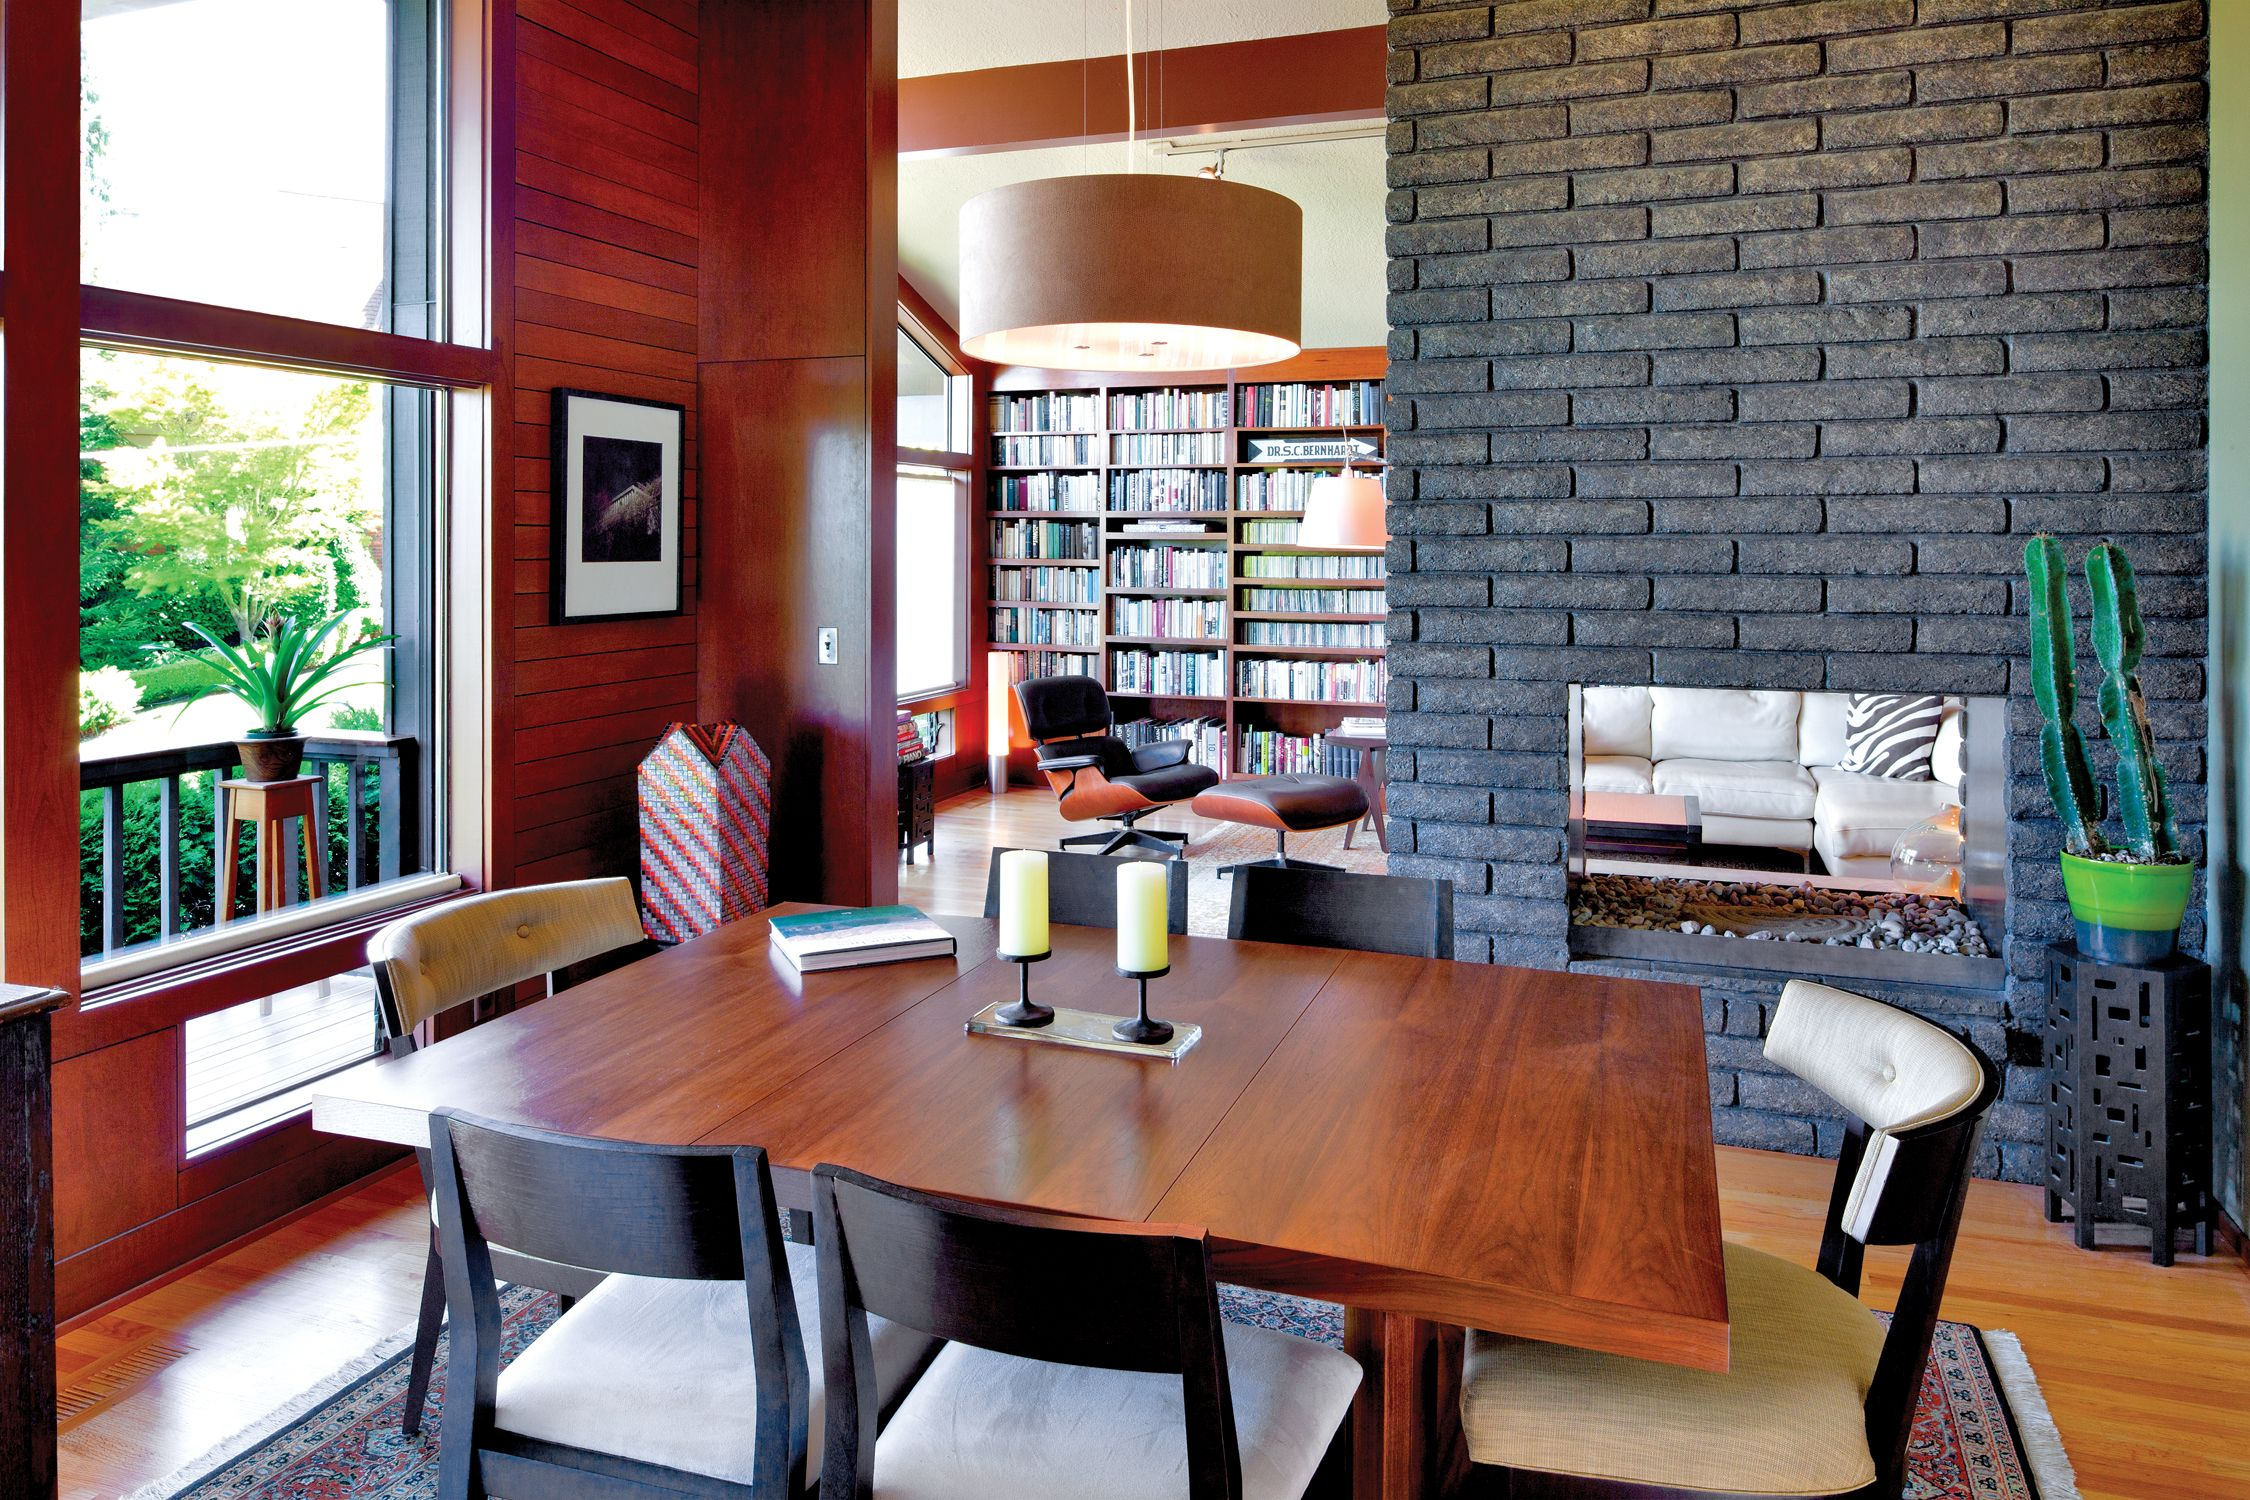 the two sided gray stained masonry fireplace is situated between